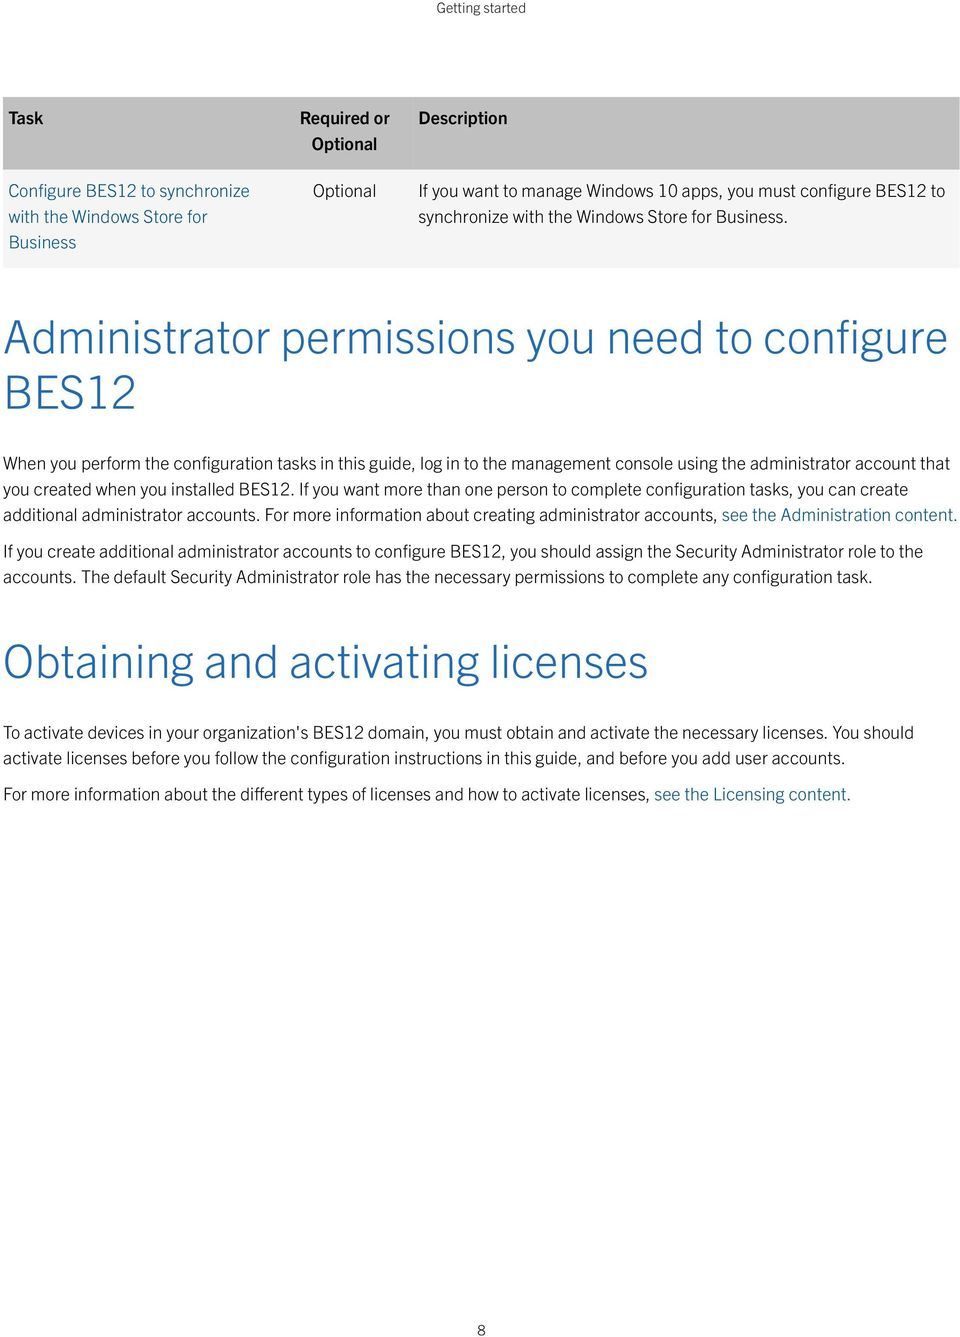 Administrator permissions you need to configure BES12 When you perform the configuration tasks in this guide, log in to the management console using the administrator account that you created when